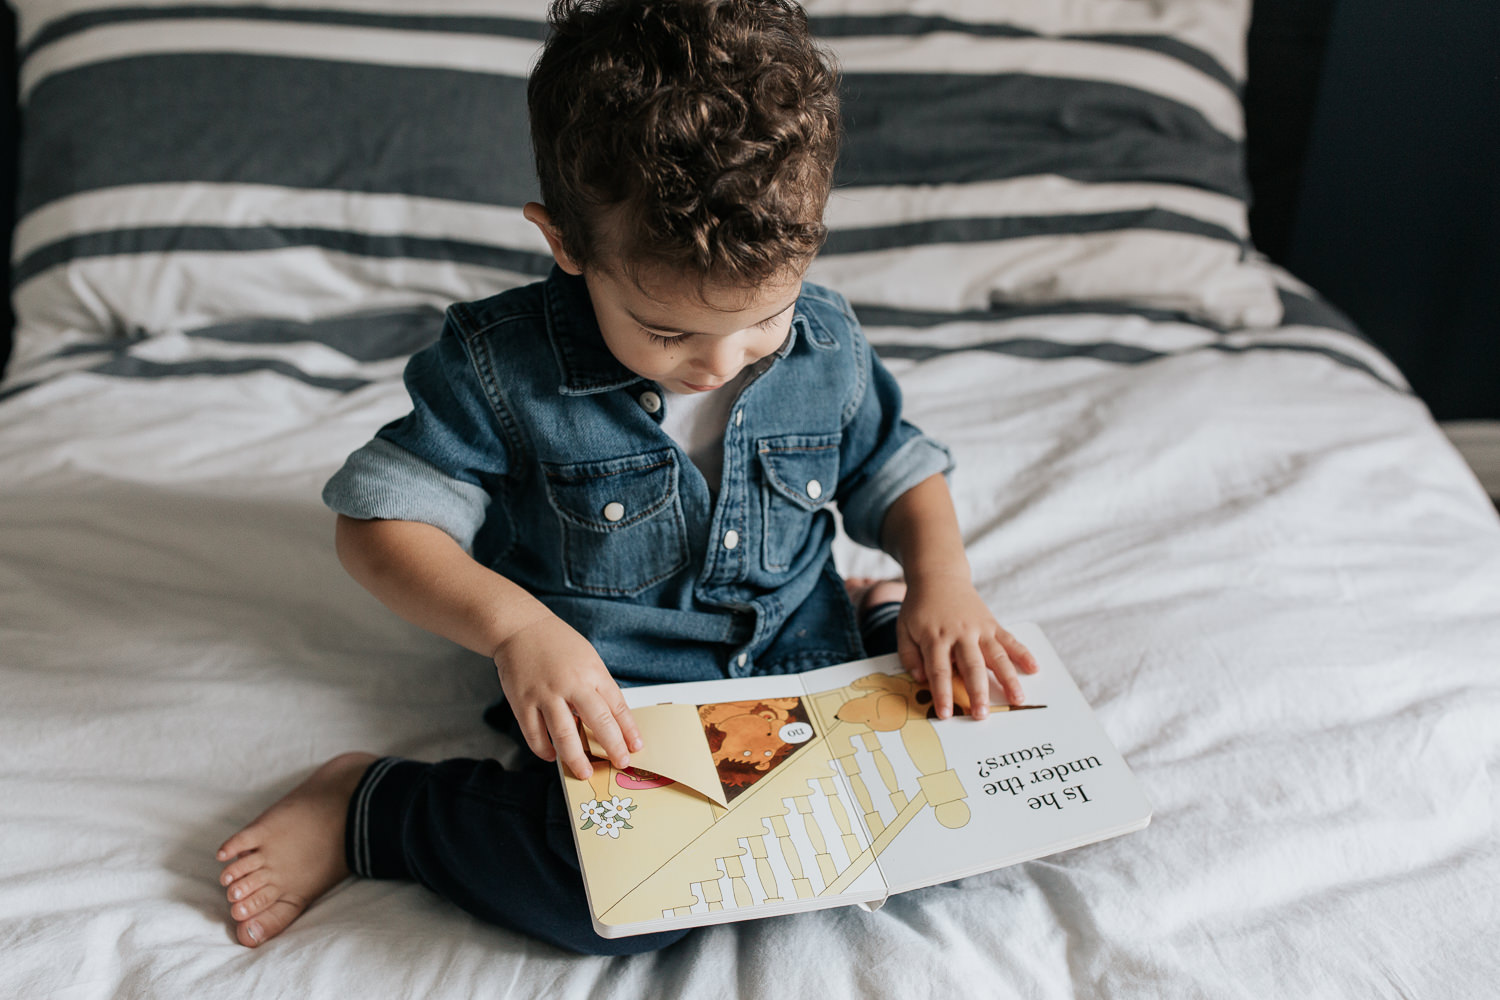 2 year old toddler boy with dark curly hair wearing chambray shirt sitting on his bed reading book - York Region In-Home Photos